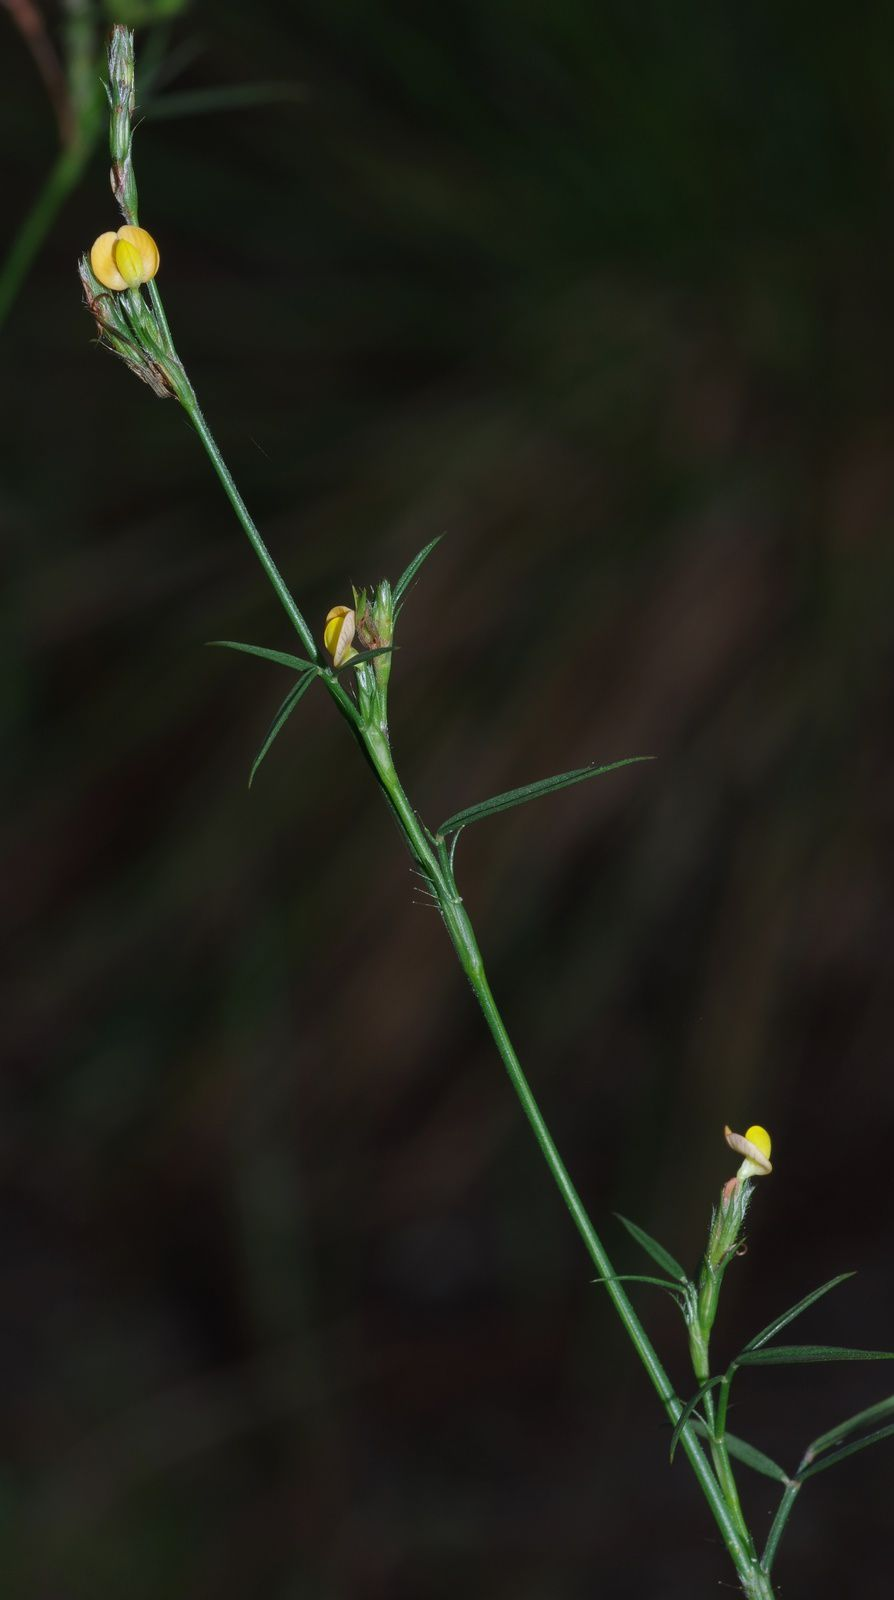 Stylosanthes angustifolia